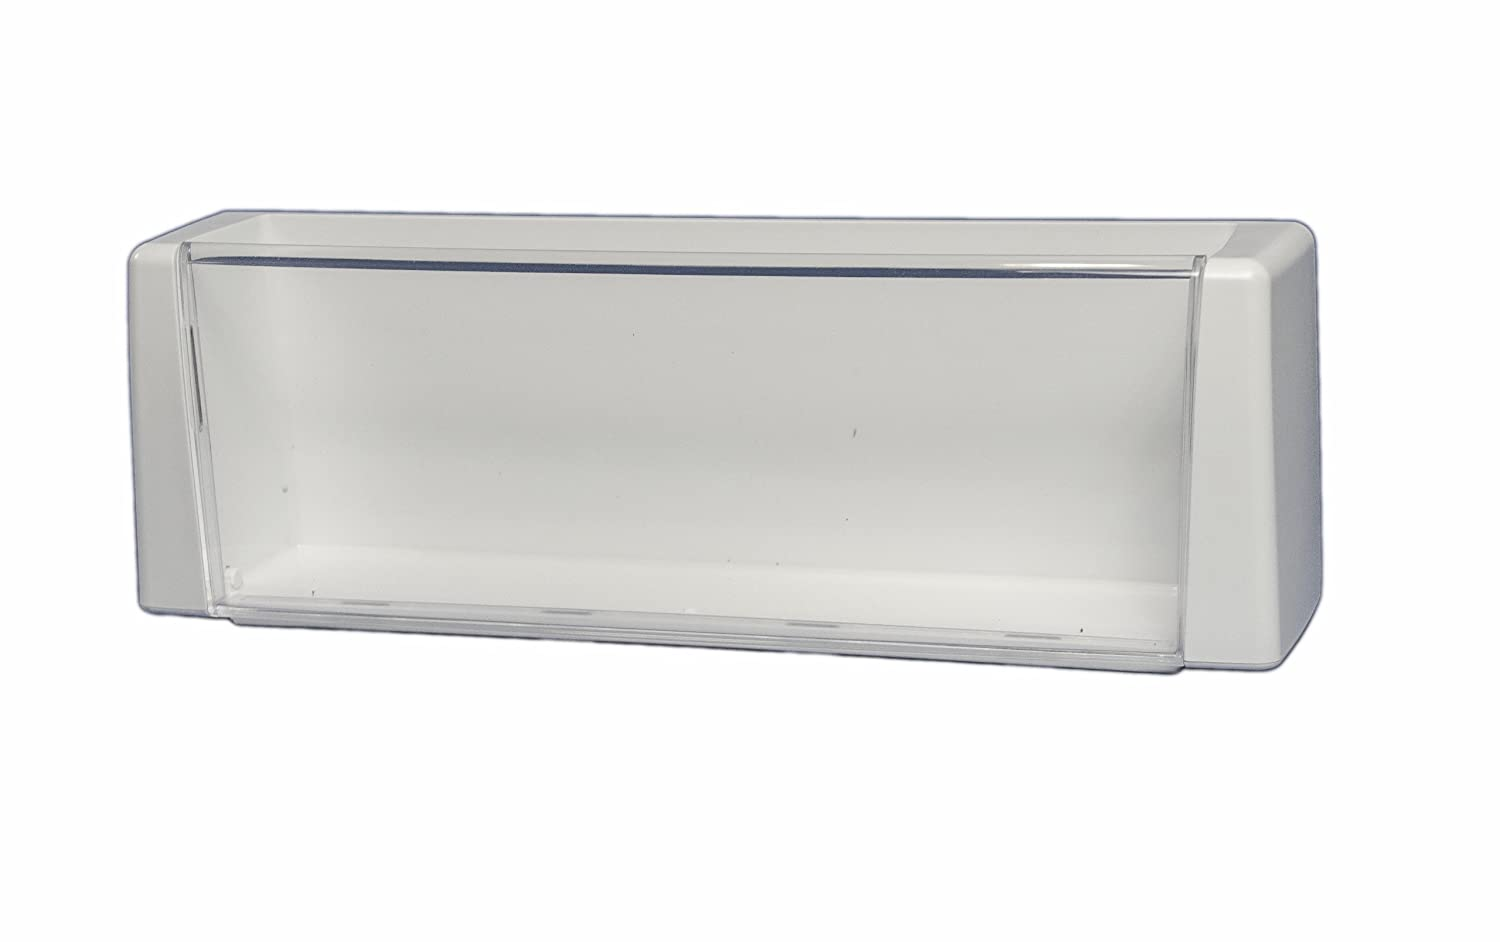 LG Electronics AAP33726606 Refrigerator Door Shelf/Bin. White with Clear Trim